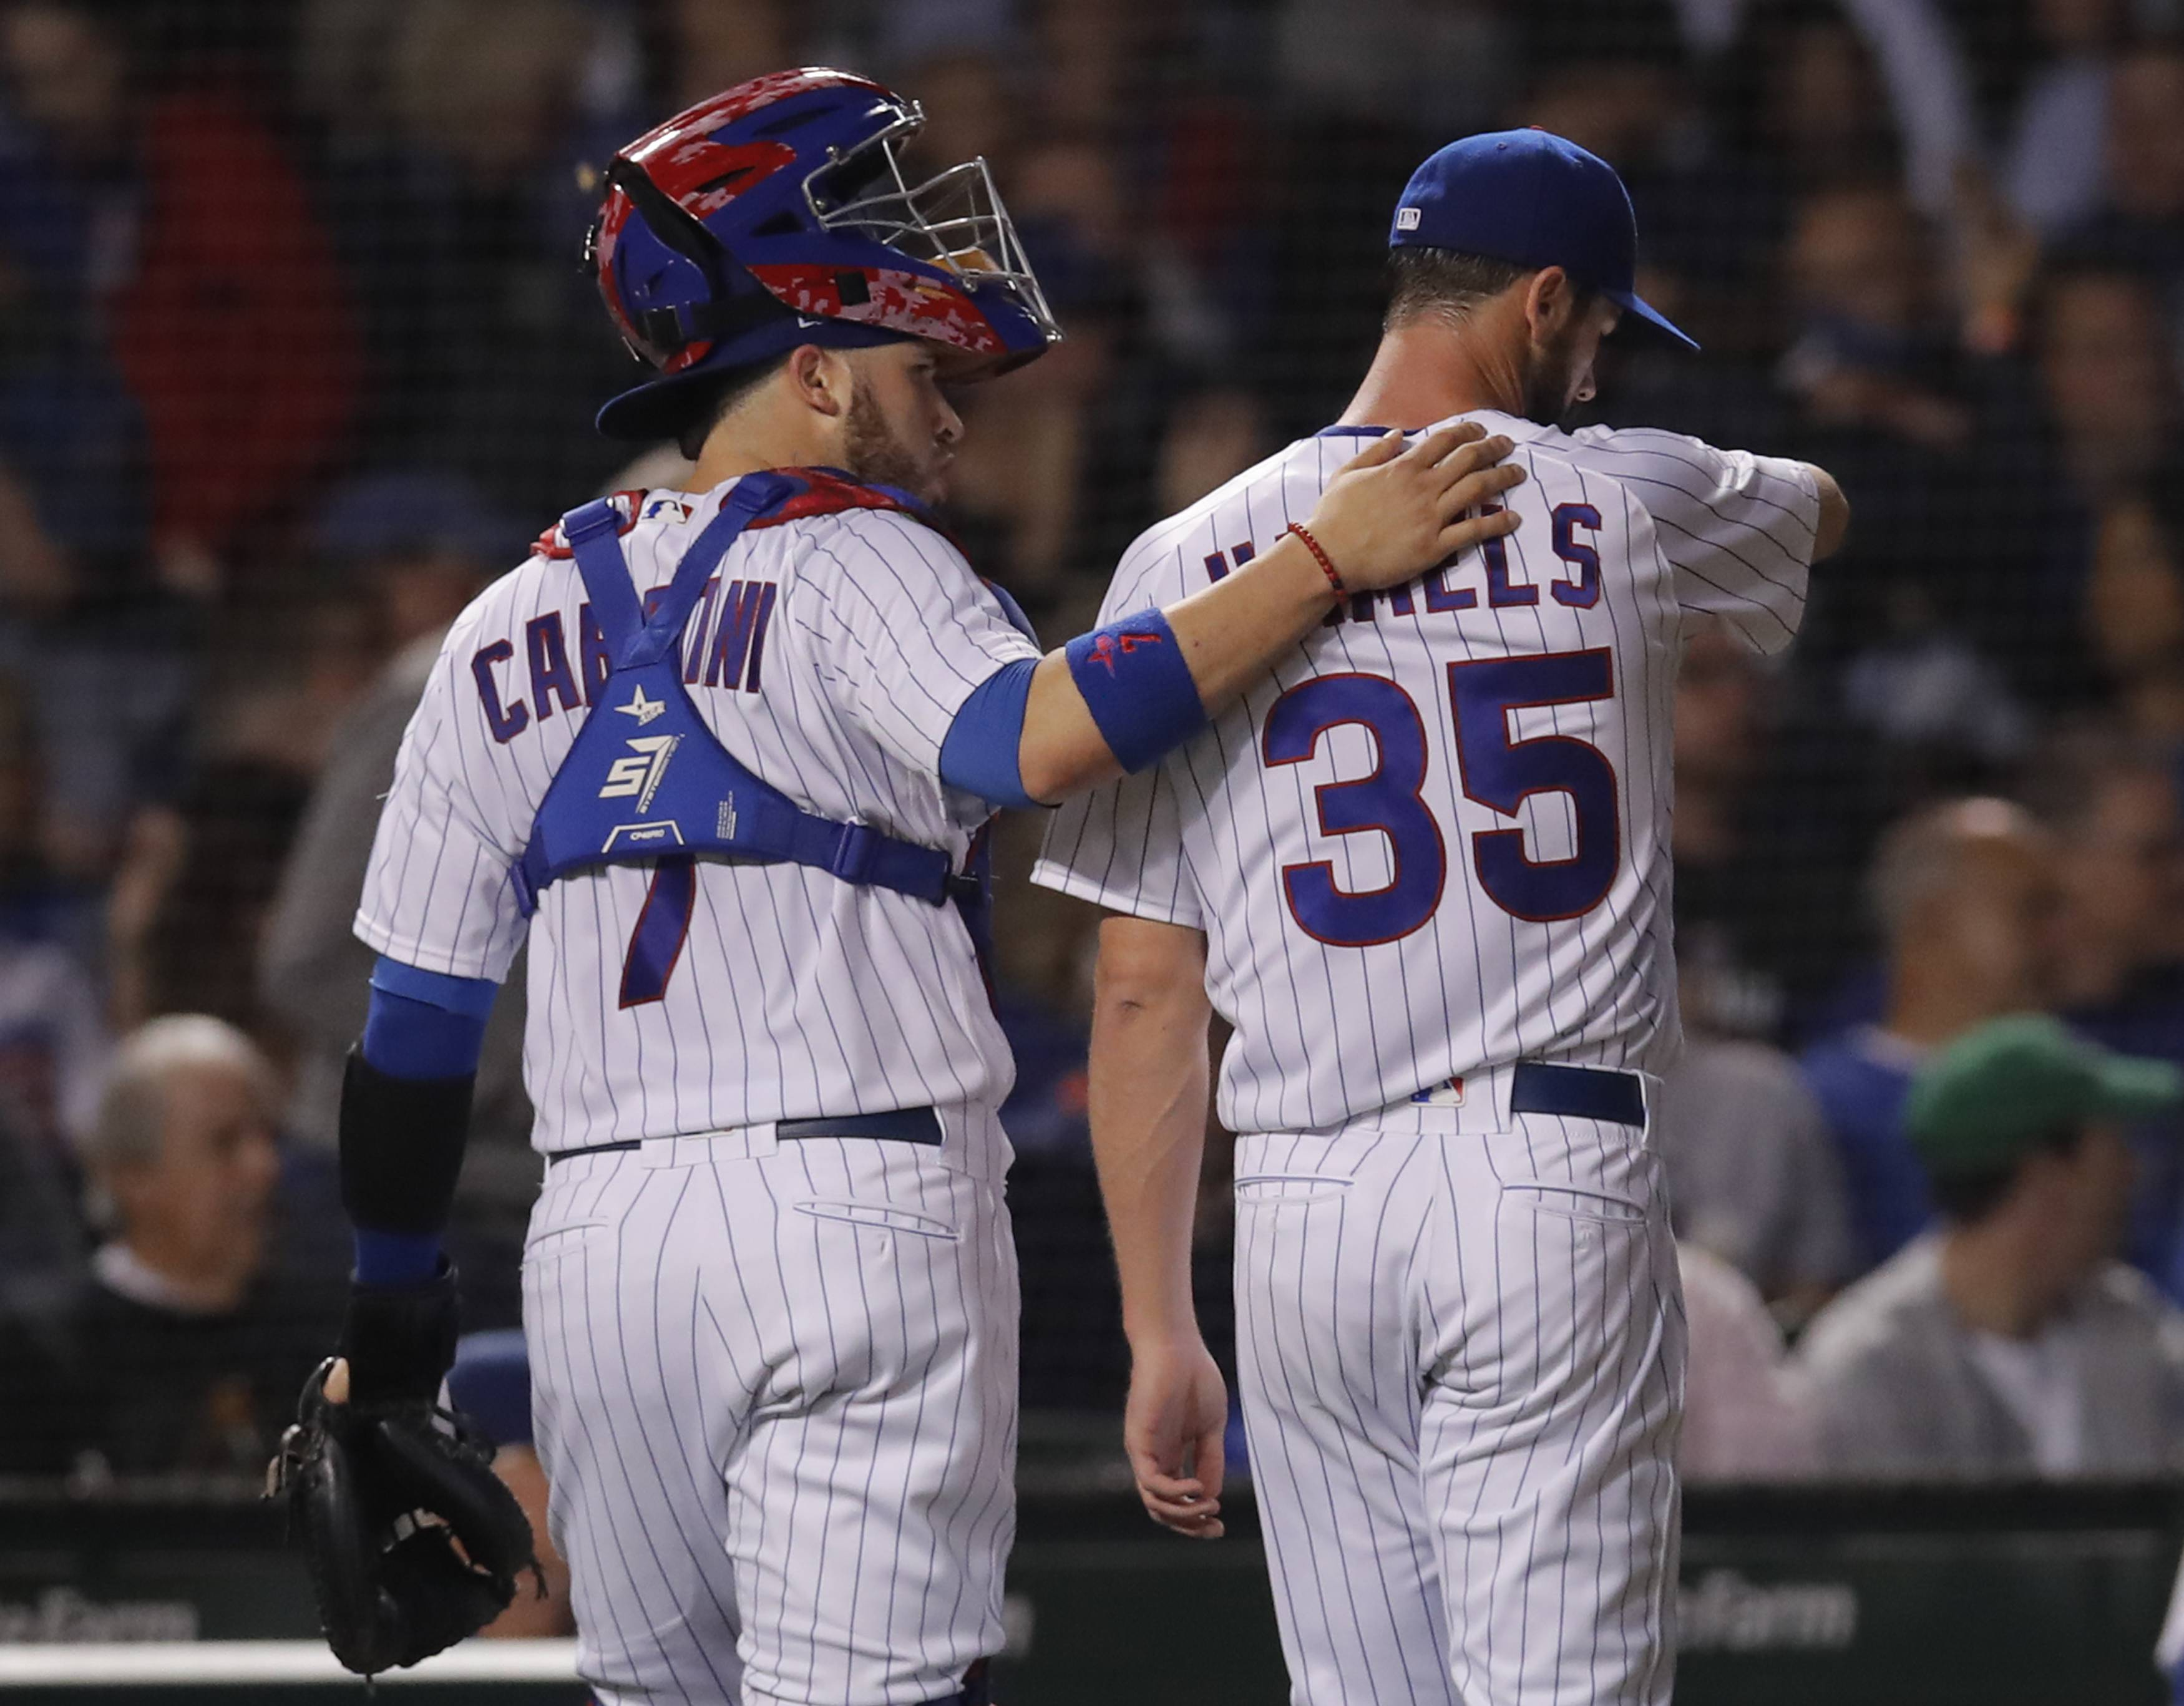 Chicago Cubs' Victor Caratini, left, walks back to the dugout with Cole Hamels at the end of the third inning of a baseball game against the Pittsburgh Pirates, Monday, Sept. 24, 2018, in Chicago. (AP Photo/Jim Young)